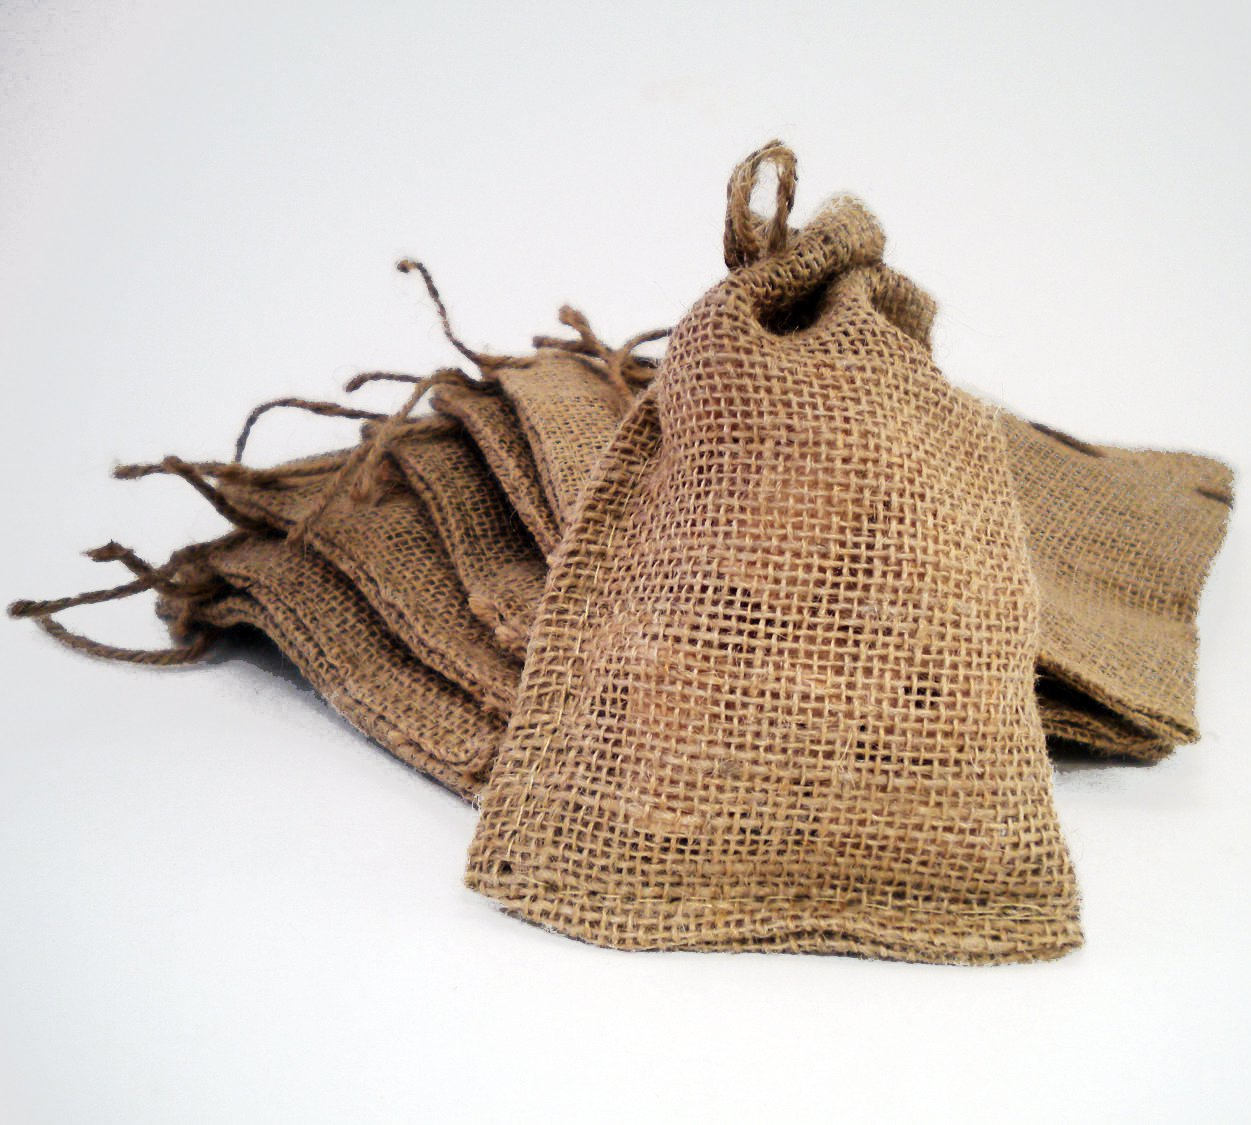 5 Burlap Sacks With Jute Drawstring 4x6 Quot For Seeds Or Gifts